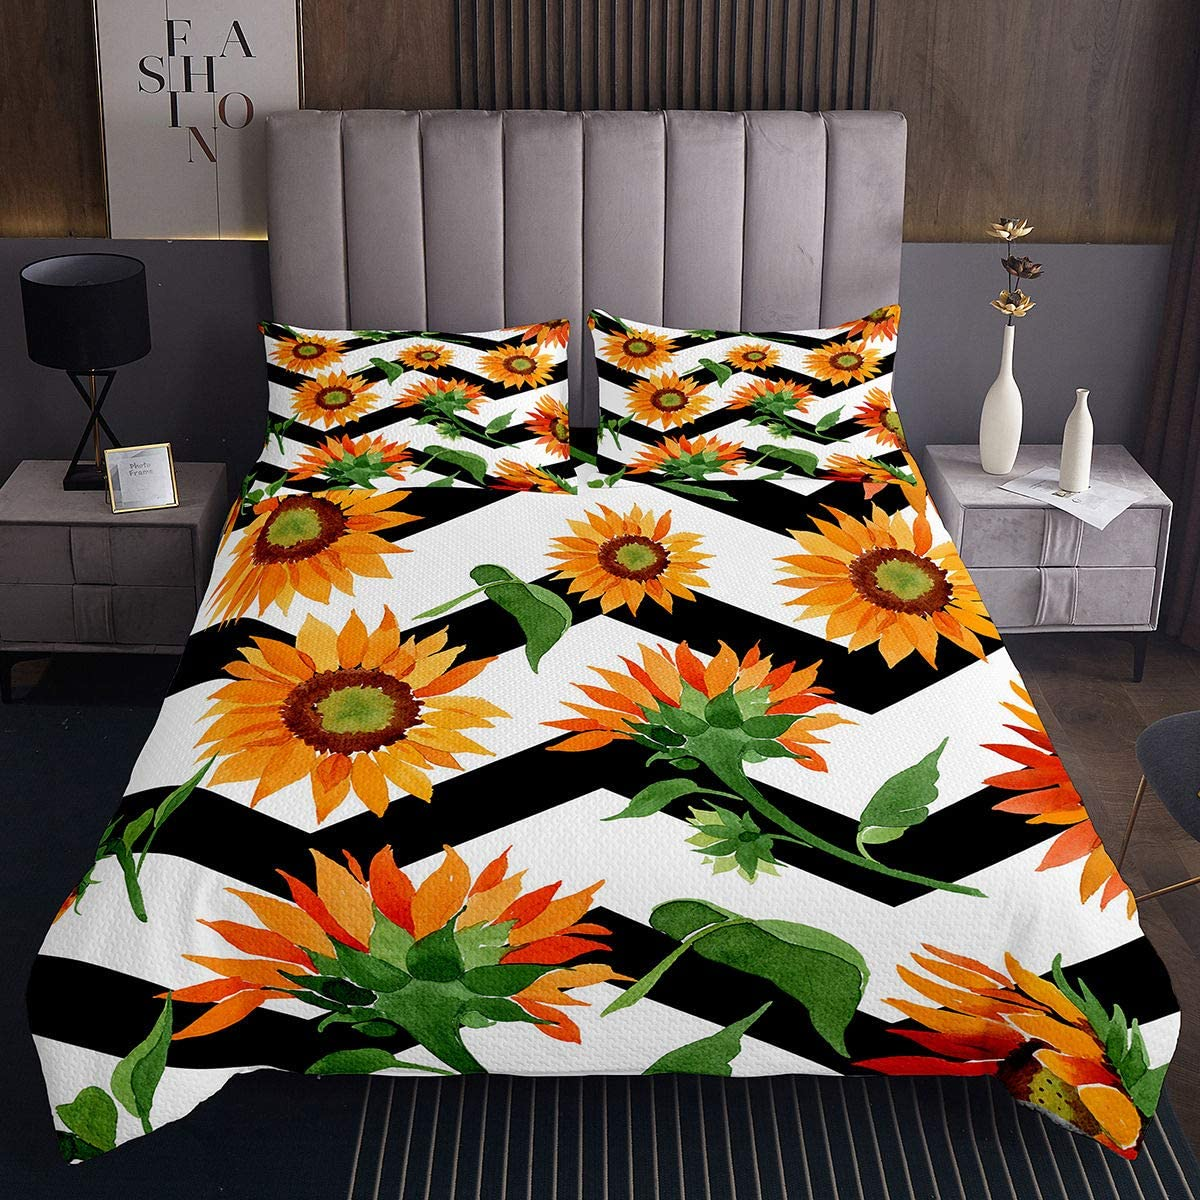 Manfei supreme Flower Quilted Coverlet Yellow Black Bedspread Sunflower mart